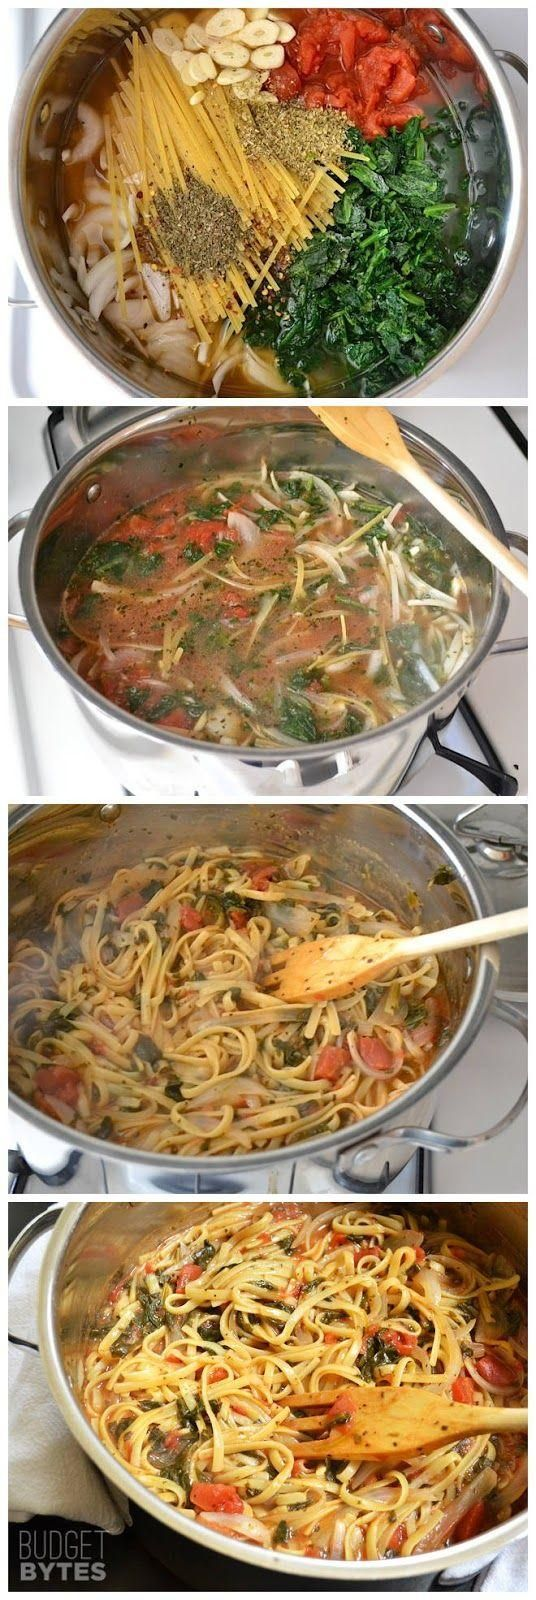 Italian Wonderpot  4 cups vegetable broth,  2 Tbsp olive oil, 12 oz. fettuccine, 8 oz. frozen chopped spinach, 1 (28 oz.) can diced tomatoes, 1 medium onion, 4 cloves garlic, ½ Tbsp dried basil, ½ Tbsp dried oregano, ¼ tsp red pepper flakes, freshly cracked pepper to taste, 2 oz. feta cheese. Make with brown rice pasta and no cheese!